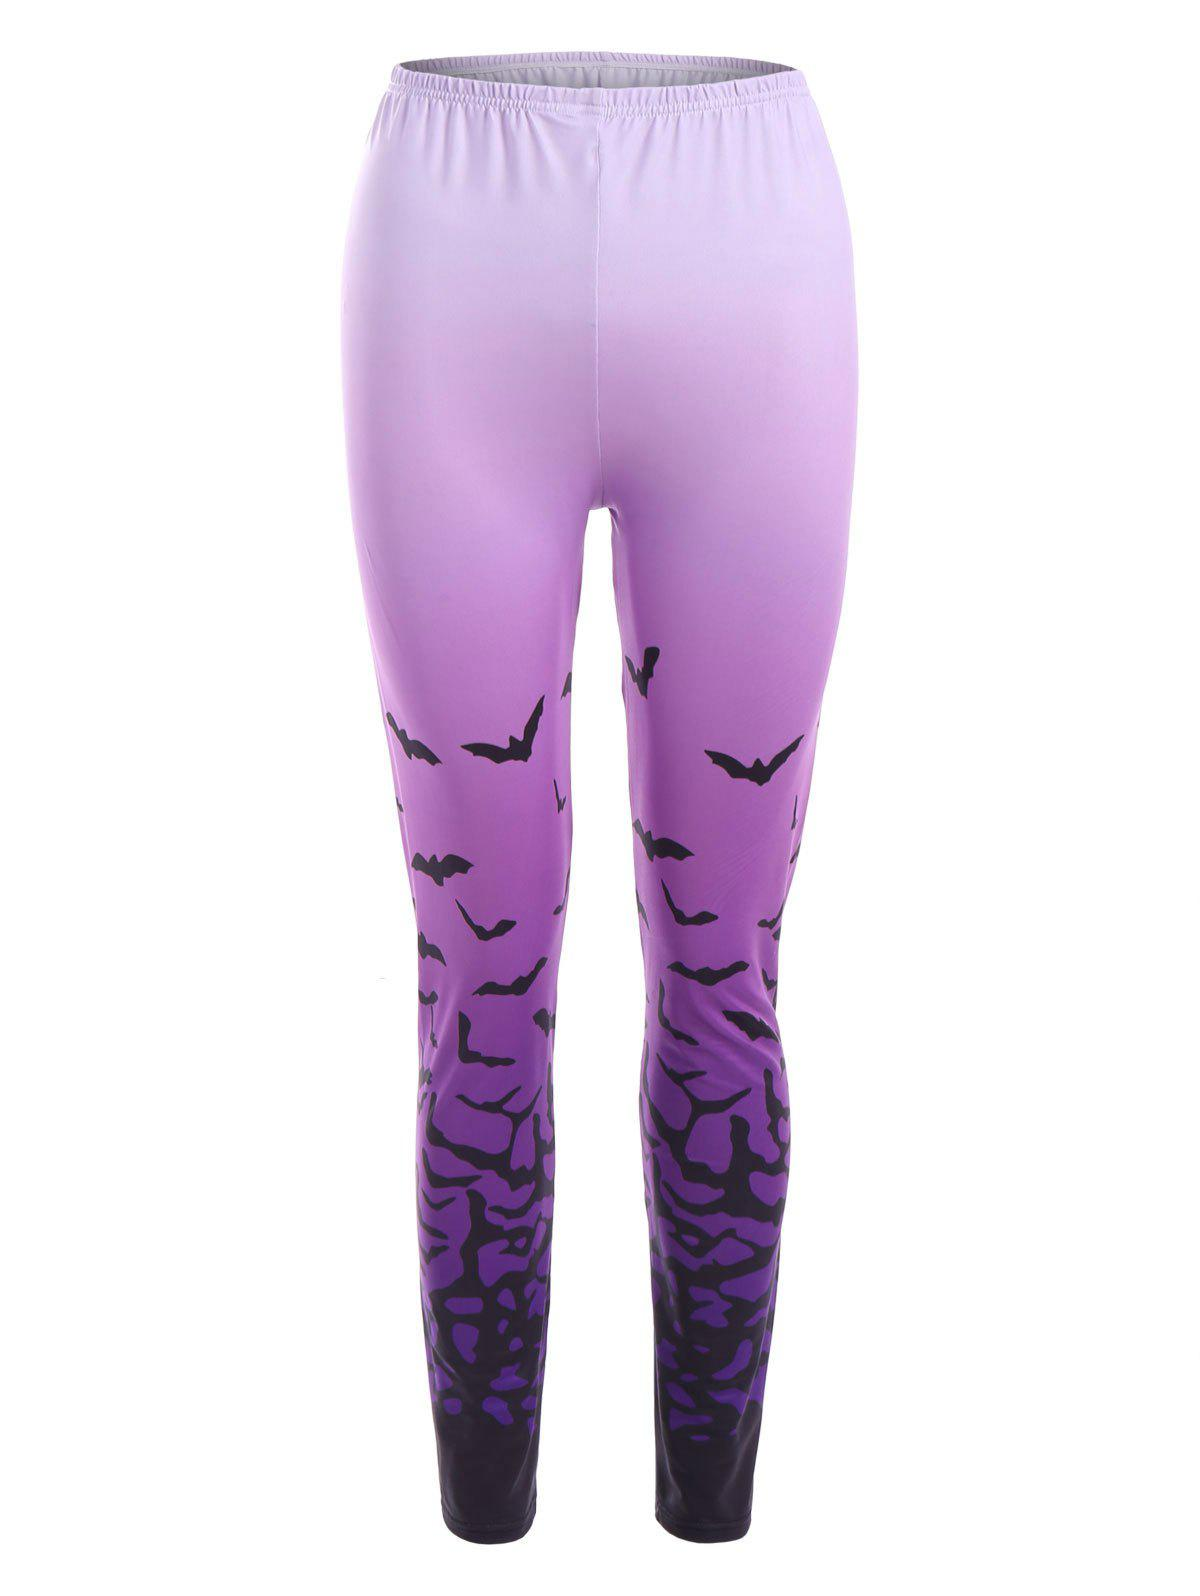 Bat Ombre Print Halloween LeggingsWOMEN<br><br>Size: XL; Color: PURPLE; Style: Novelty; Material: Polyester,Spandex; Waist Type: Mid; Pattern Type: Others; Weight: 0.2000kg; Package Contents: 1 x Leggings;